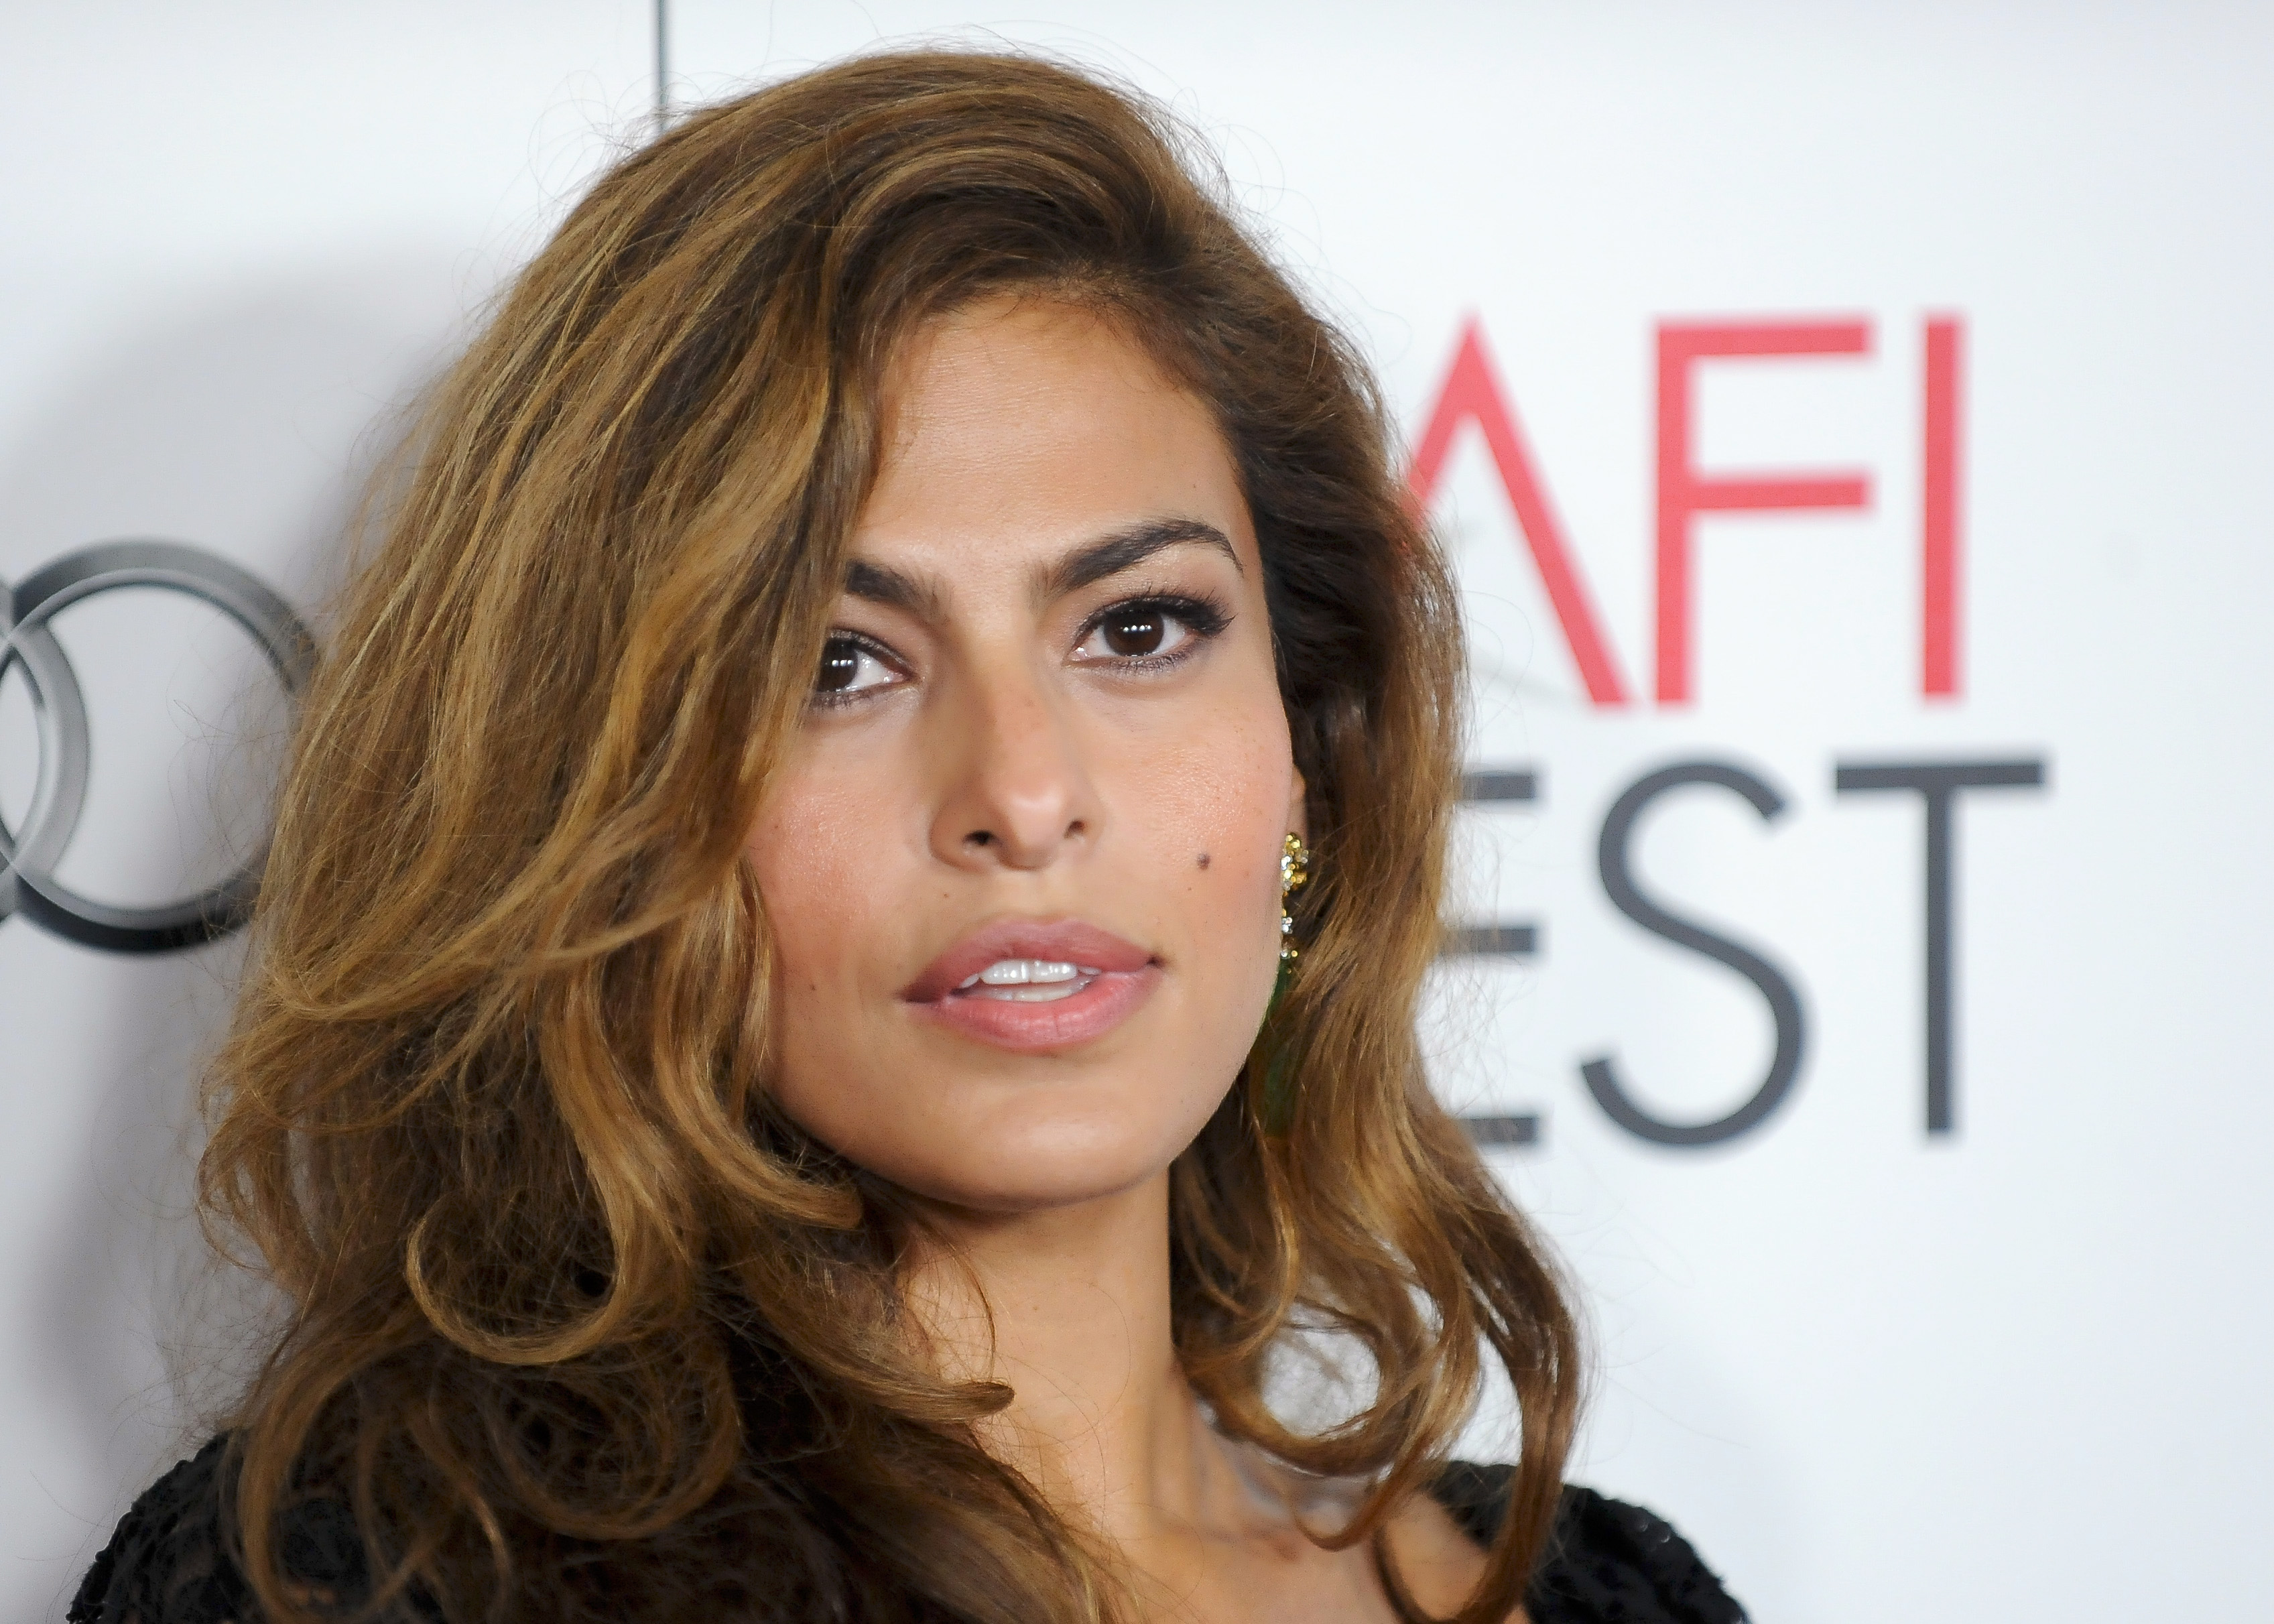 "Actress Eva Mendes arrives at the Hollywood screening of her movie ""Holy Motors"" during AFI FEST in Los Angeles, California November 3, 2012. REUTERS/Gus Ruelas (UNITED STATES - Tags: ENTERTAINMENT HEADSHOT) - RTR39YTM"